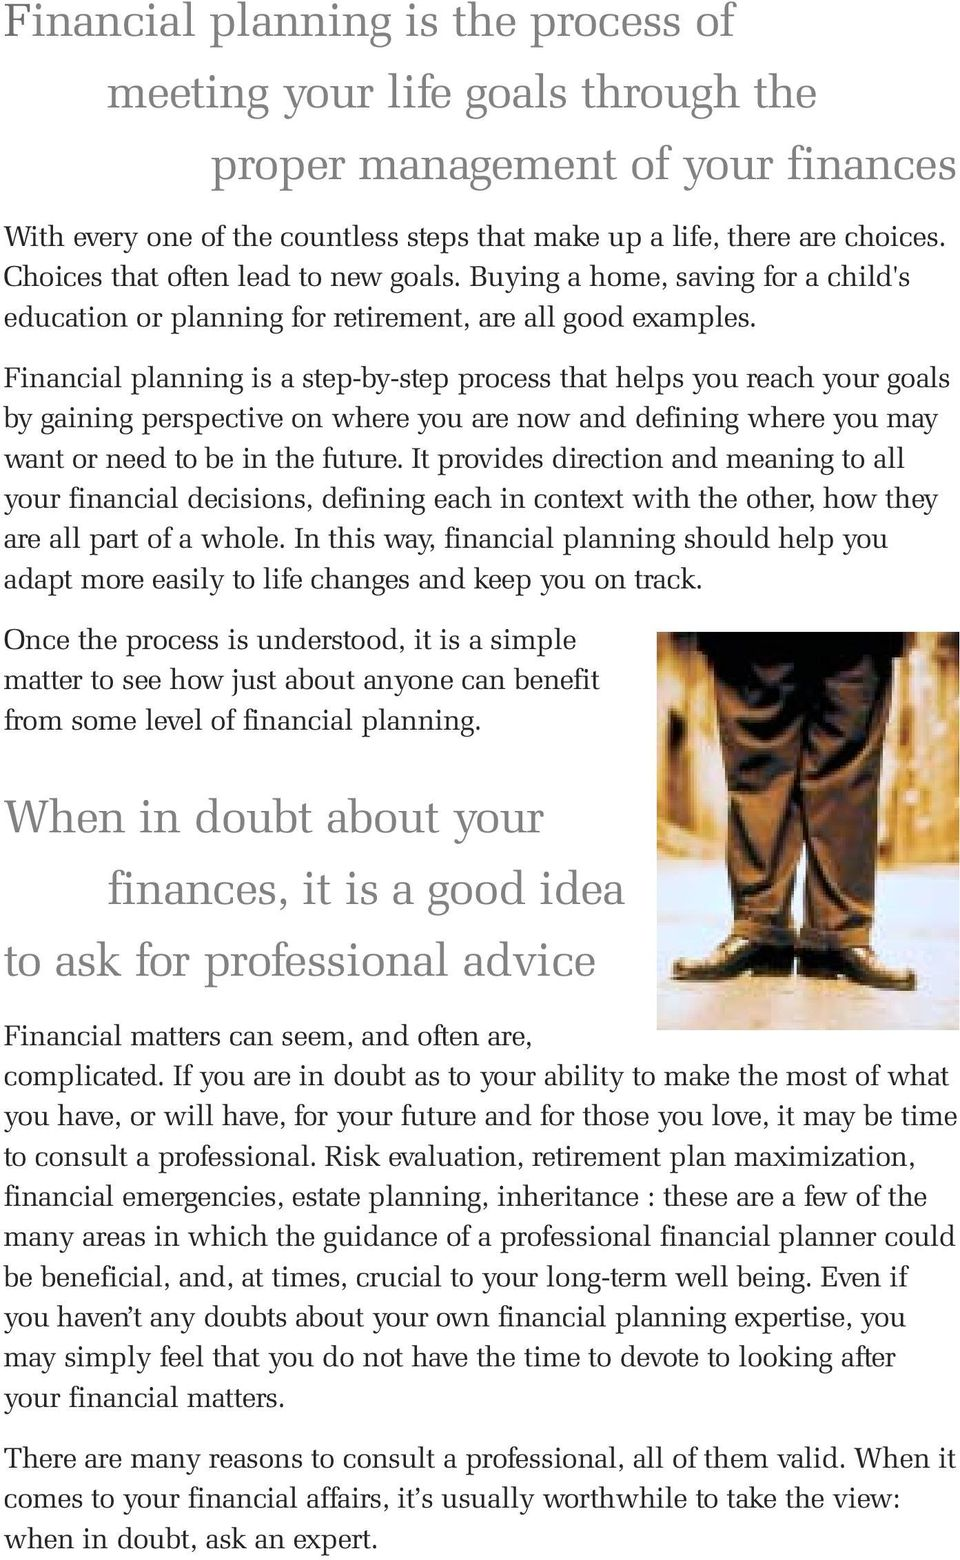 Financial planning is a step-by-step process that helps you reach your goals by gaining perspective on where you are now and defining where you may want or need to be in the future.